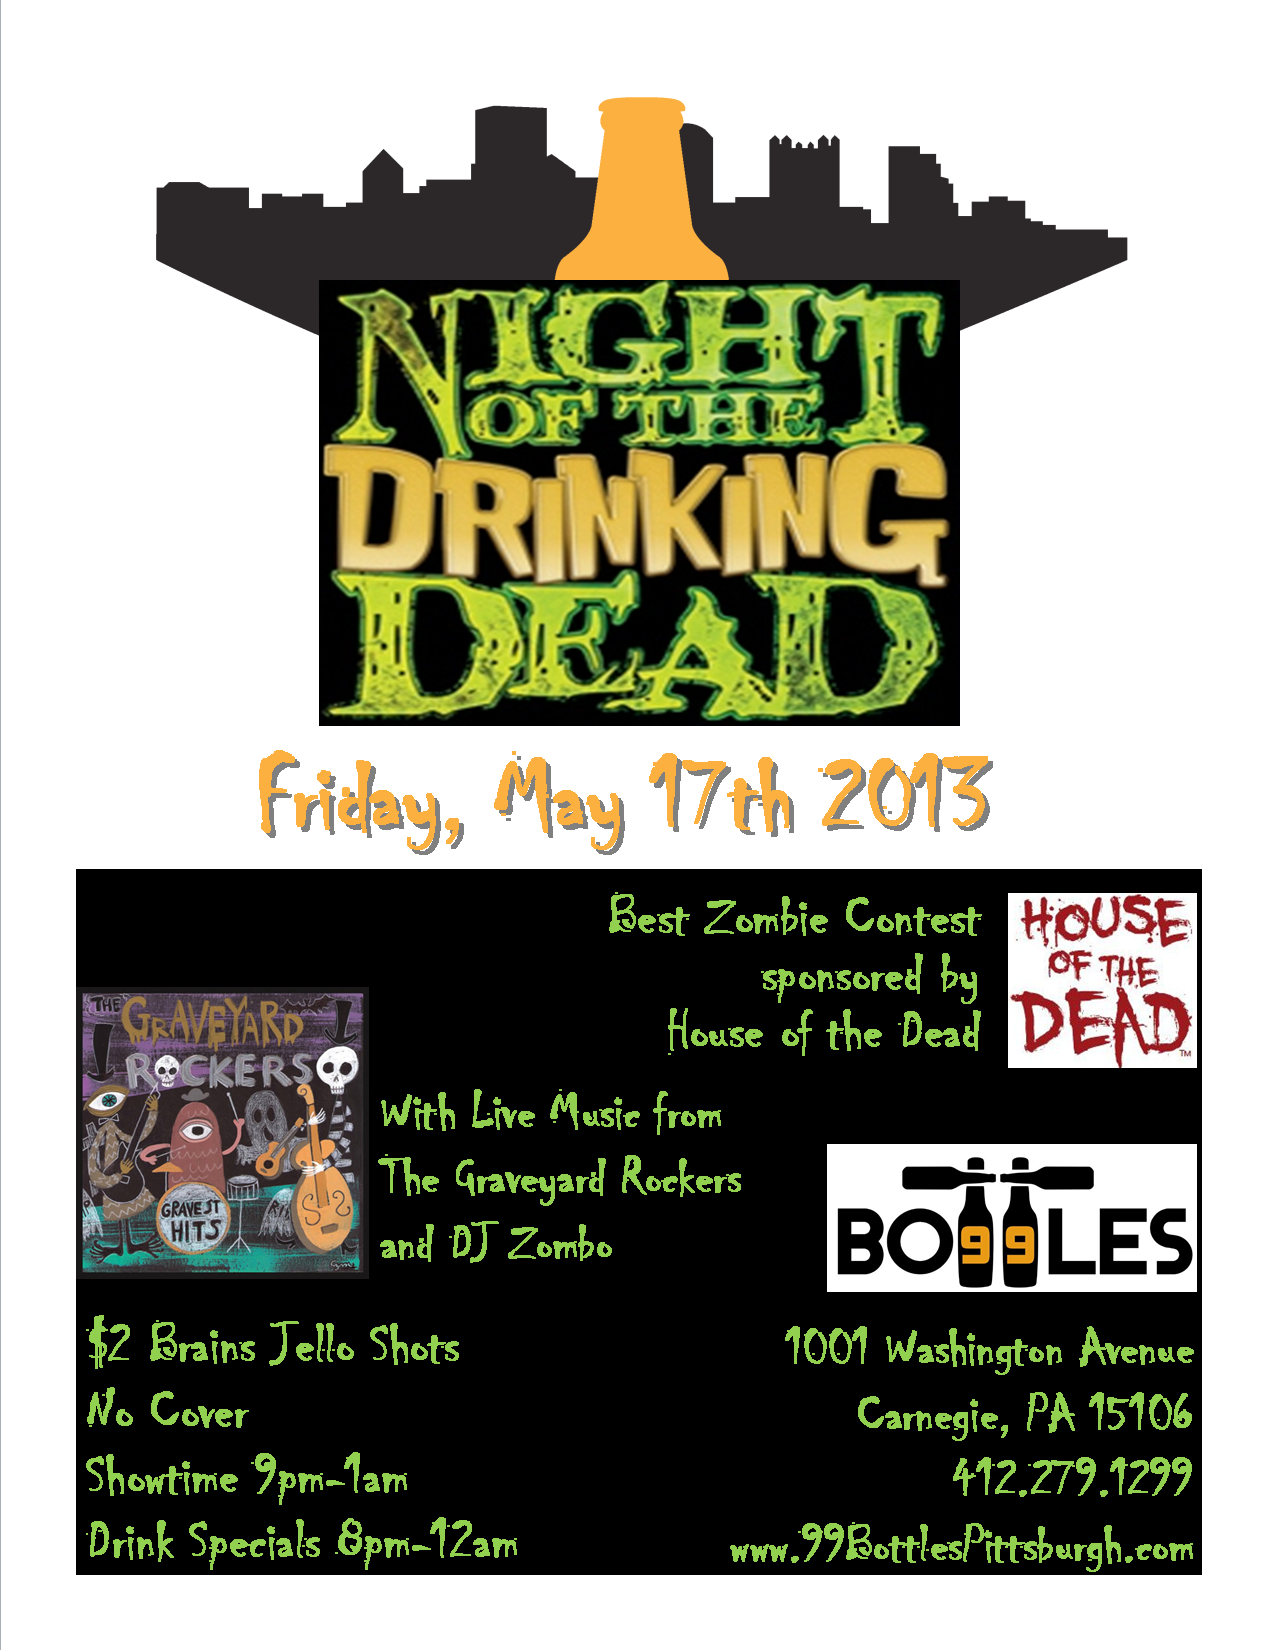 99 Bottles Night of the Drinking Dead Flyer